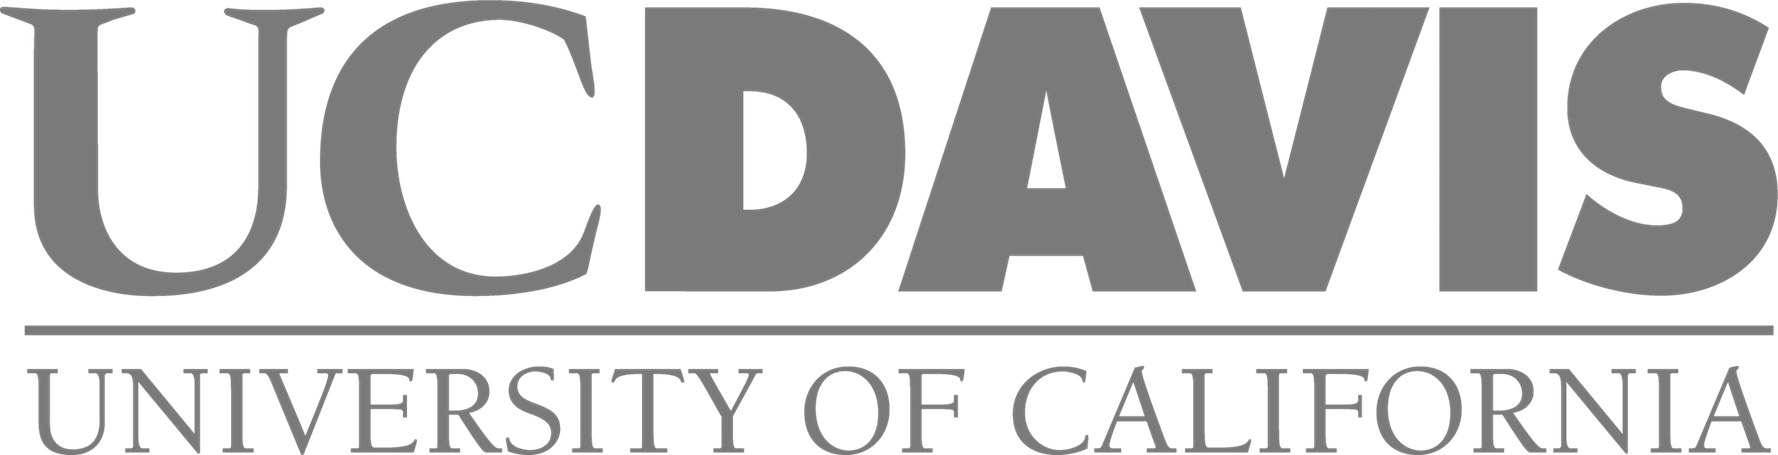 ucdavis-logo-2 copy